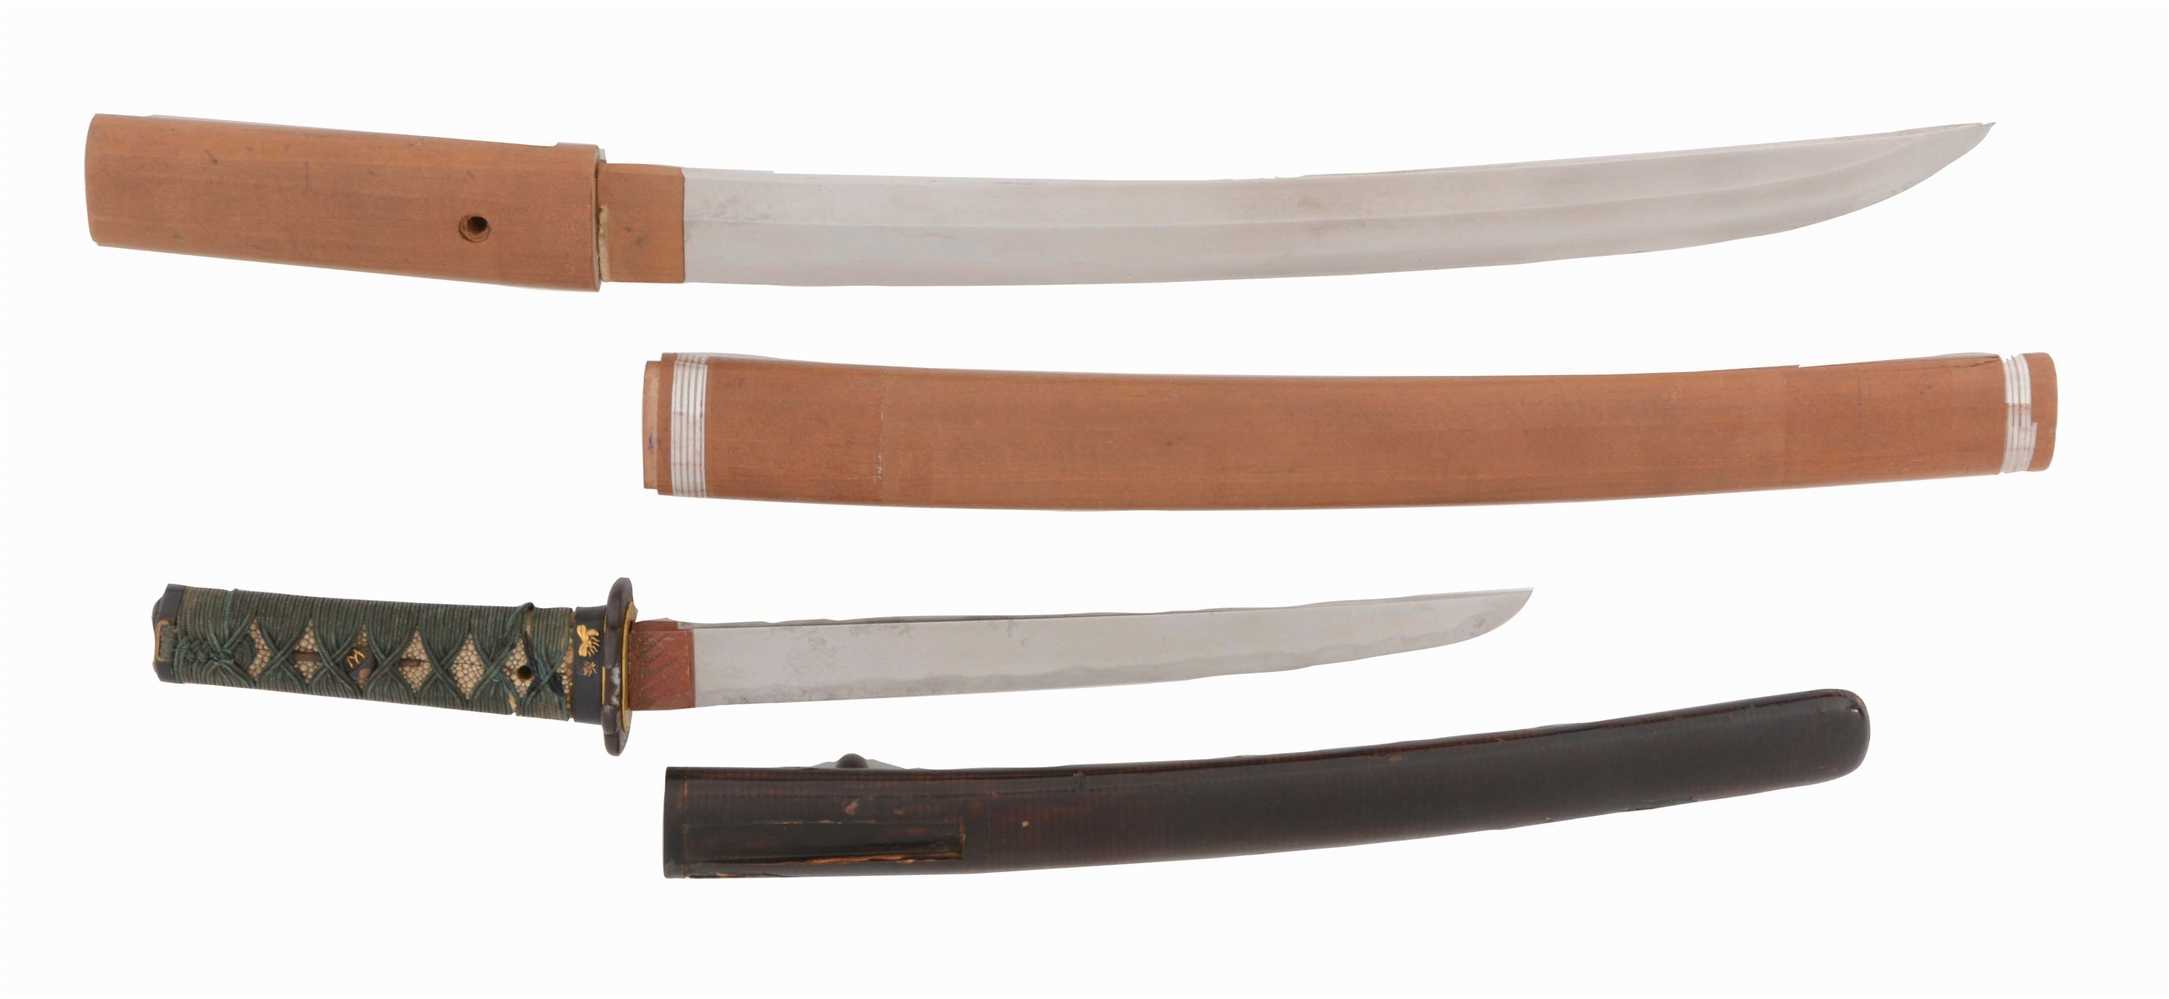 LOT OF TWO: ONE WAKIZASHI AND ONE TANTO, ONE KOTO AND THE OTHER SHIN-SHINTO, ONE IN SHIRASAYA AND ONE IN KOSHIRAE.